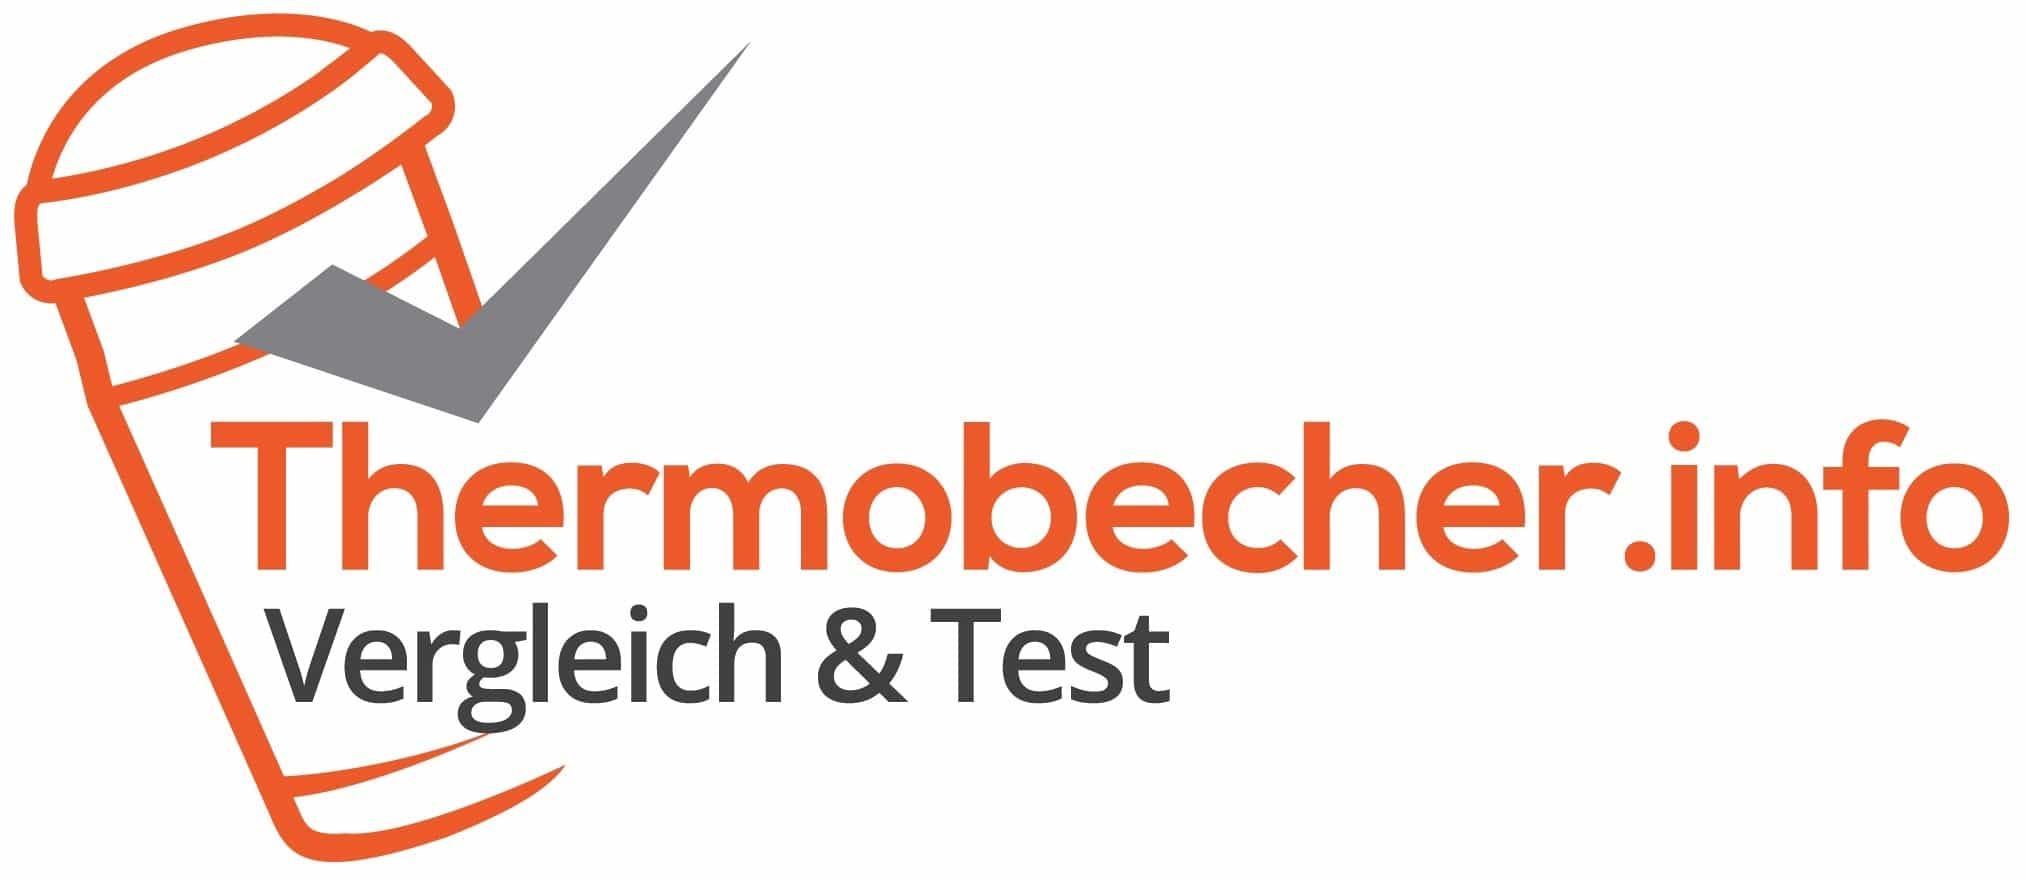 Thermobecher.info